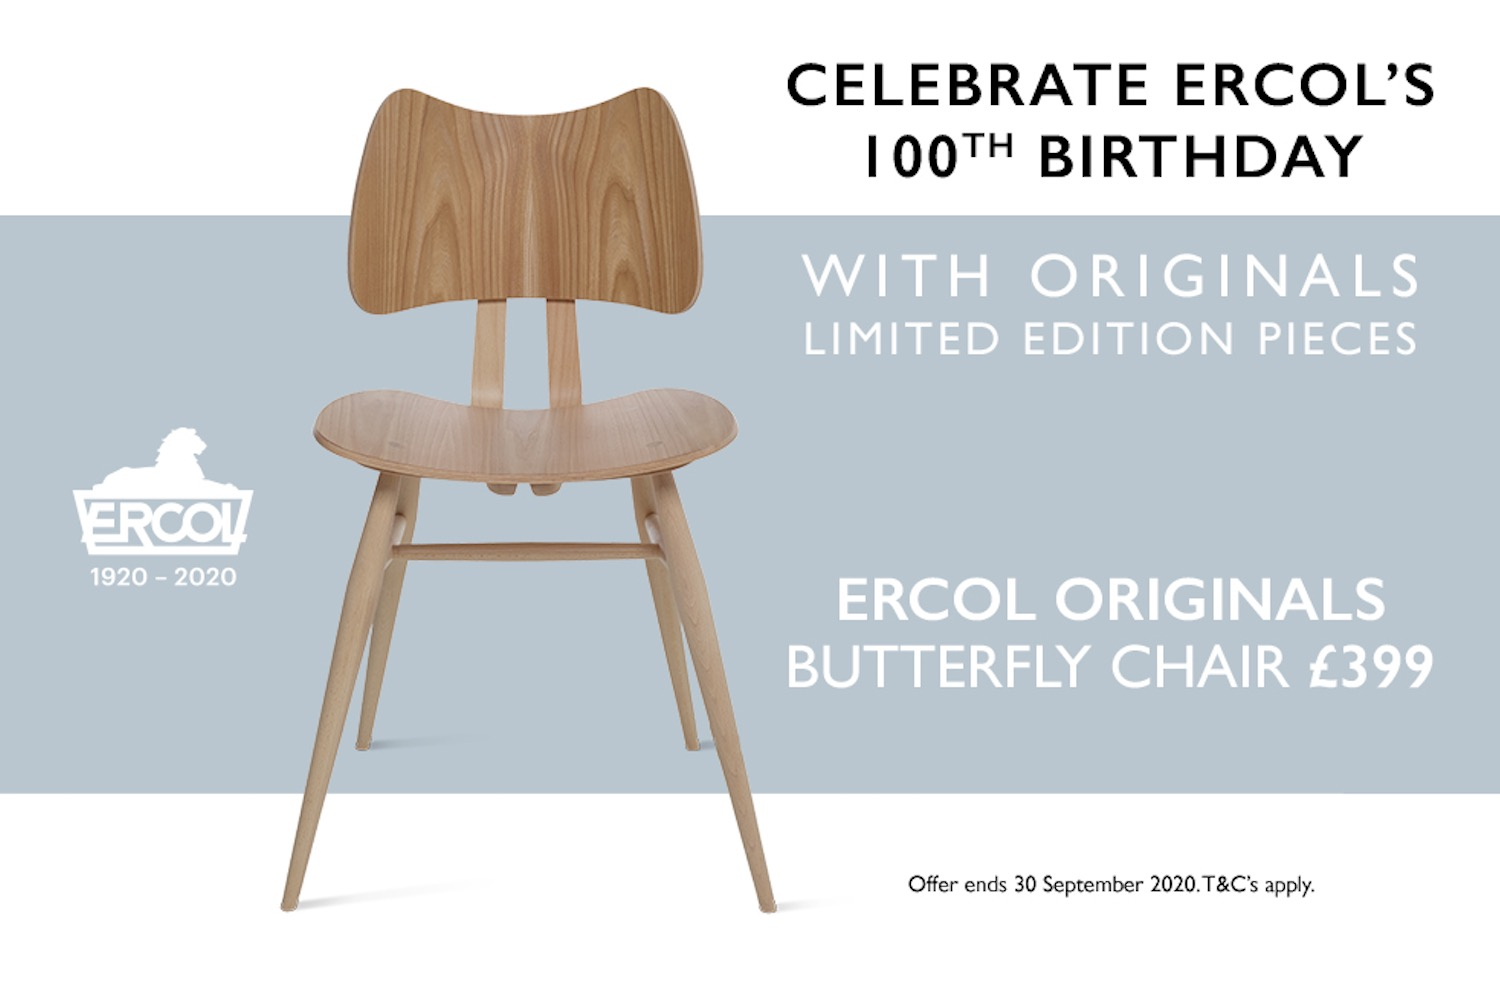 ercol Originals centenary offer